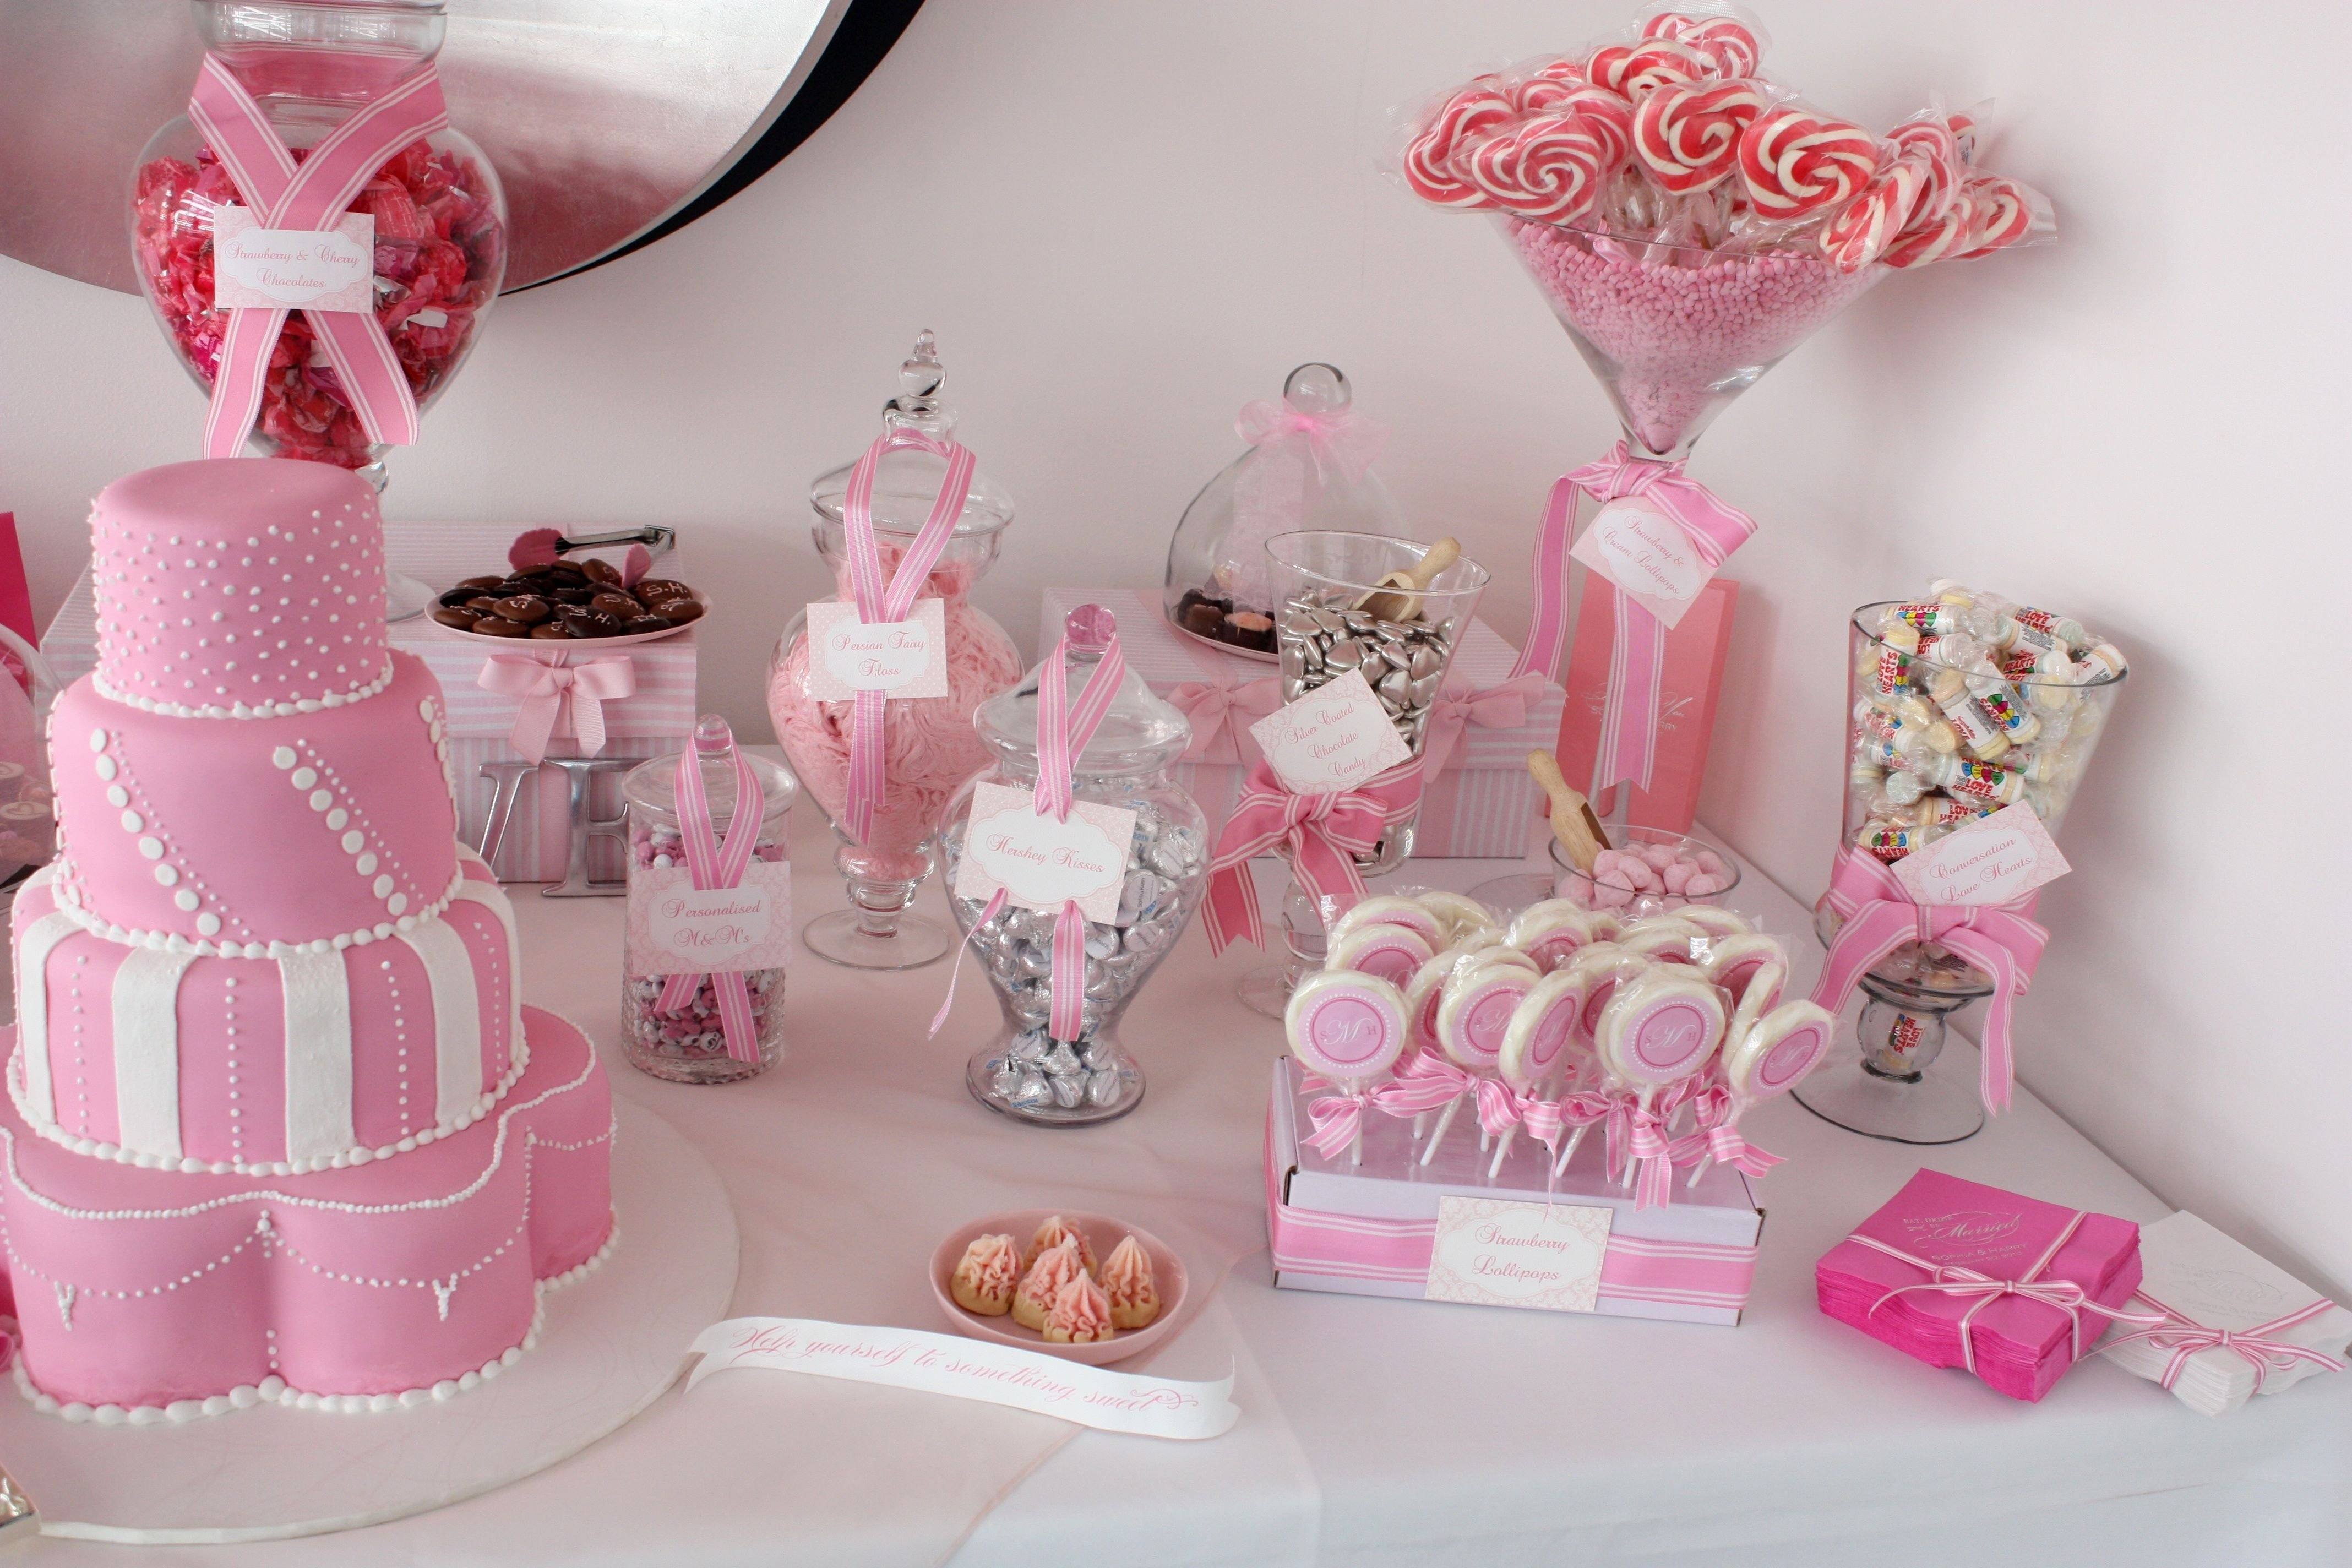 10 Elegant Baby Shower Candy Bar Ideas decorating candy jars for buffet baby shower bar ideas decor of